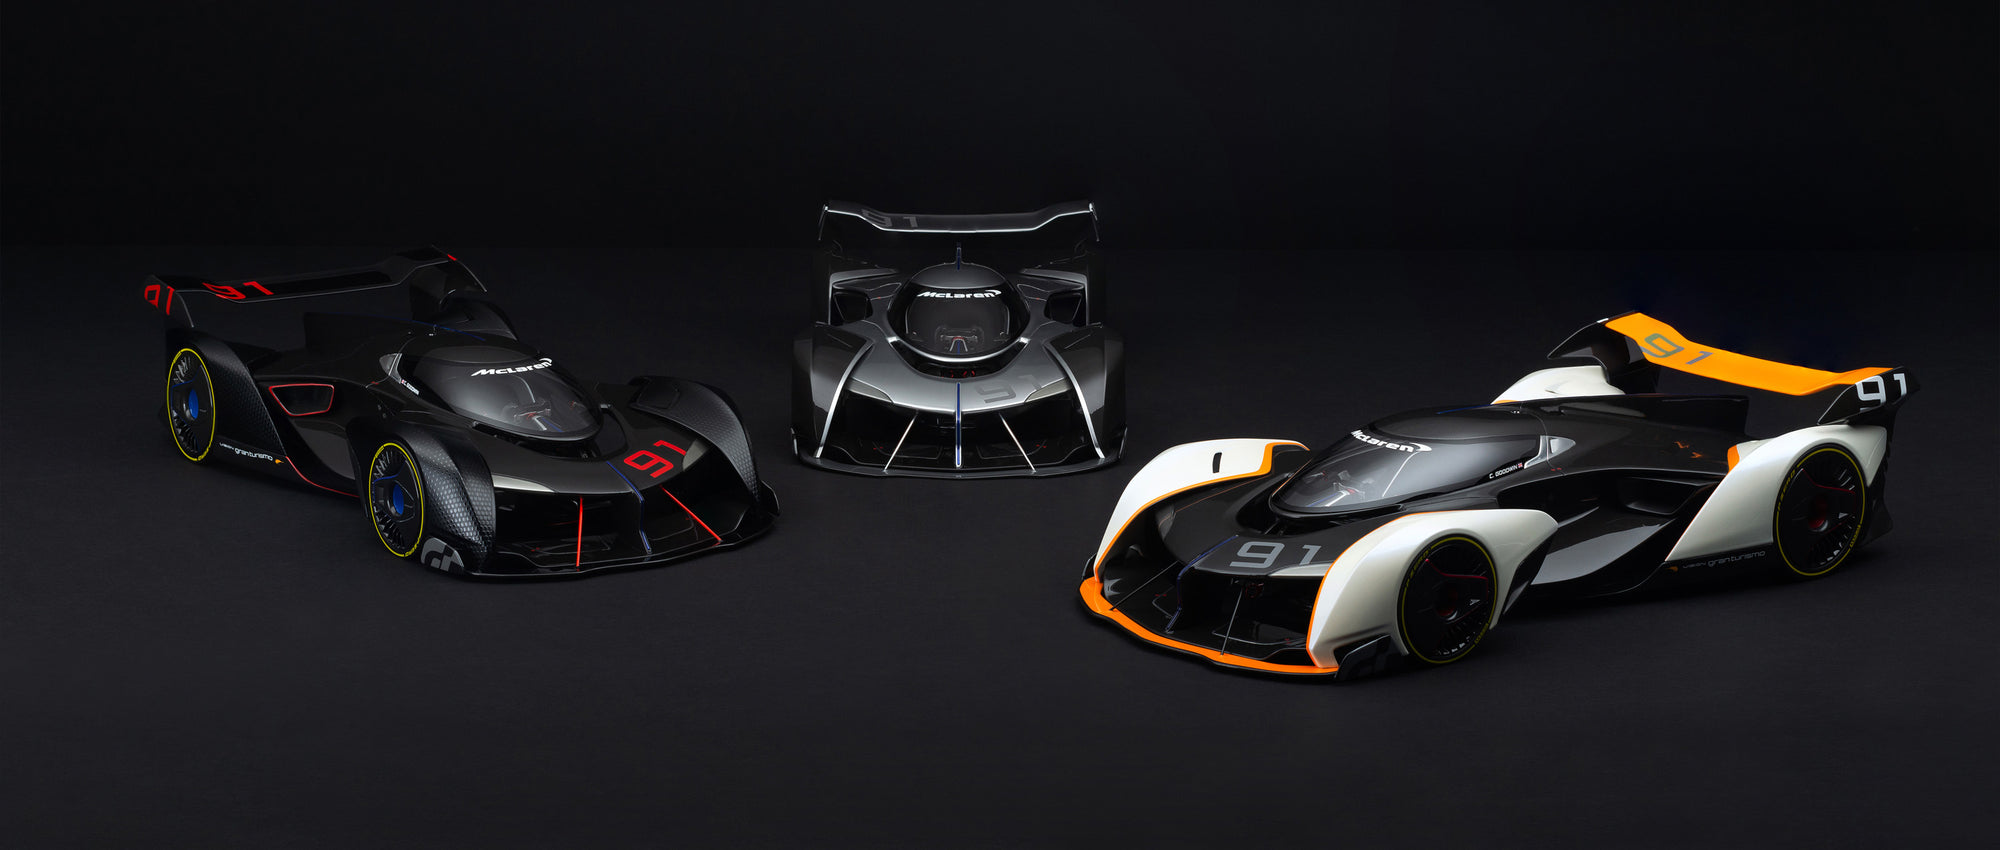 McLaren Ultimate Vision Gran Turismo - Signed Edition